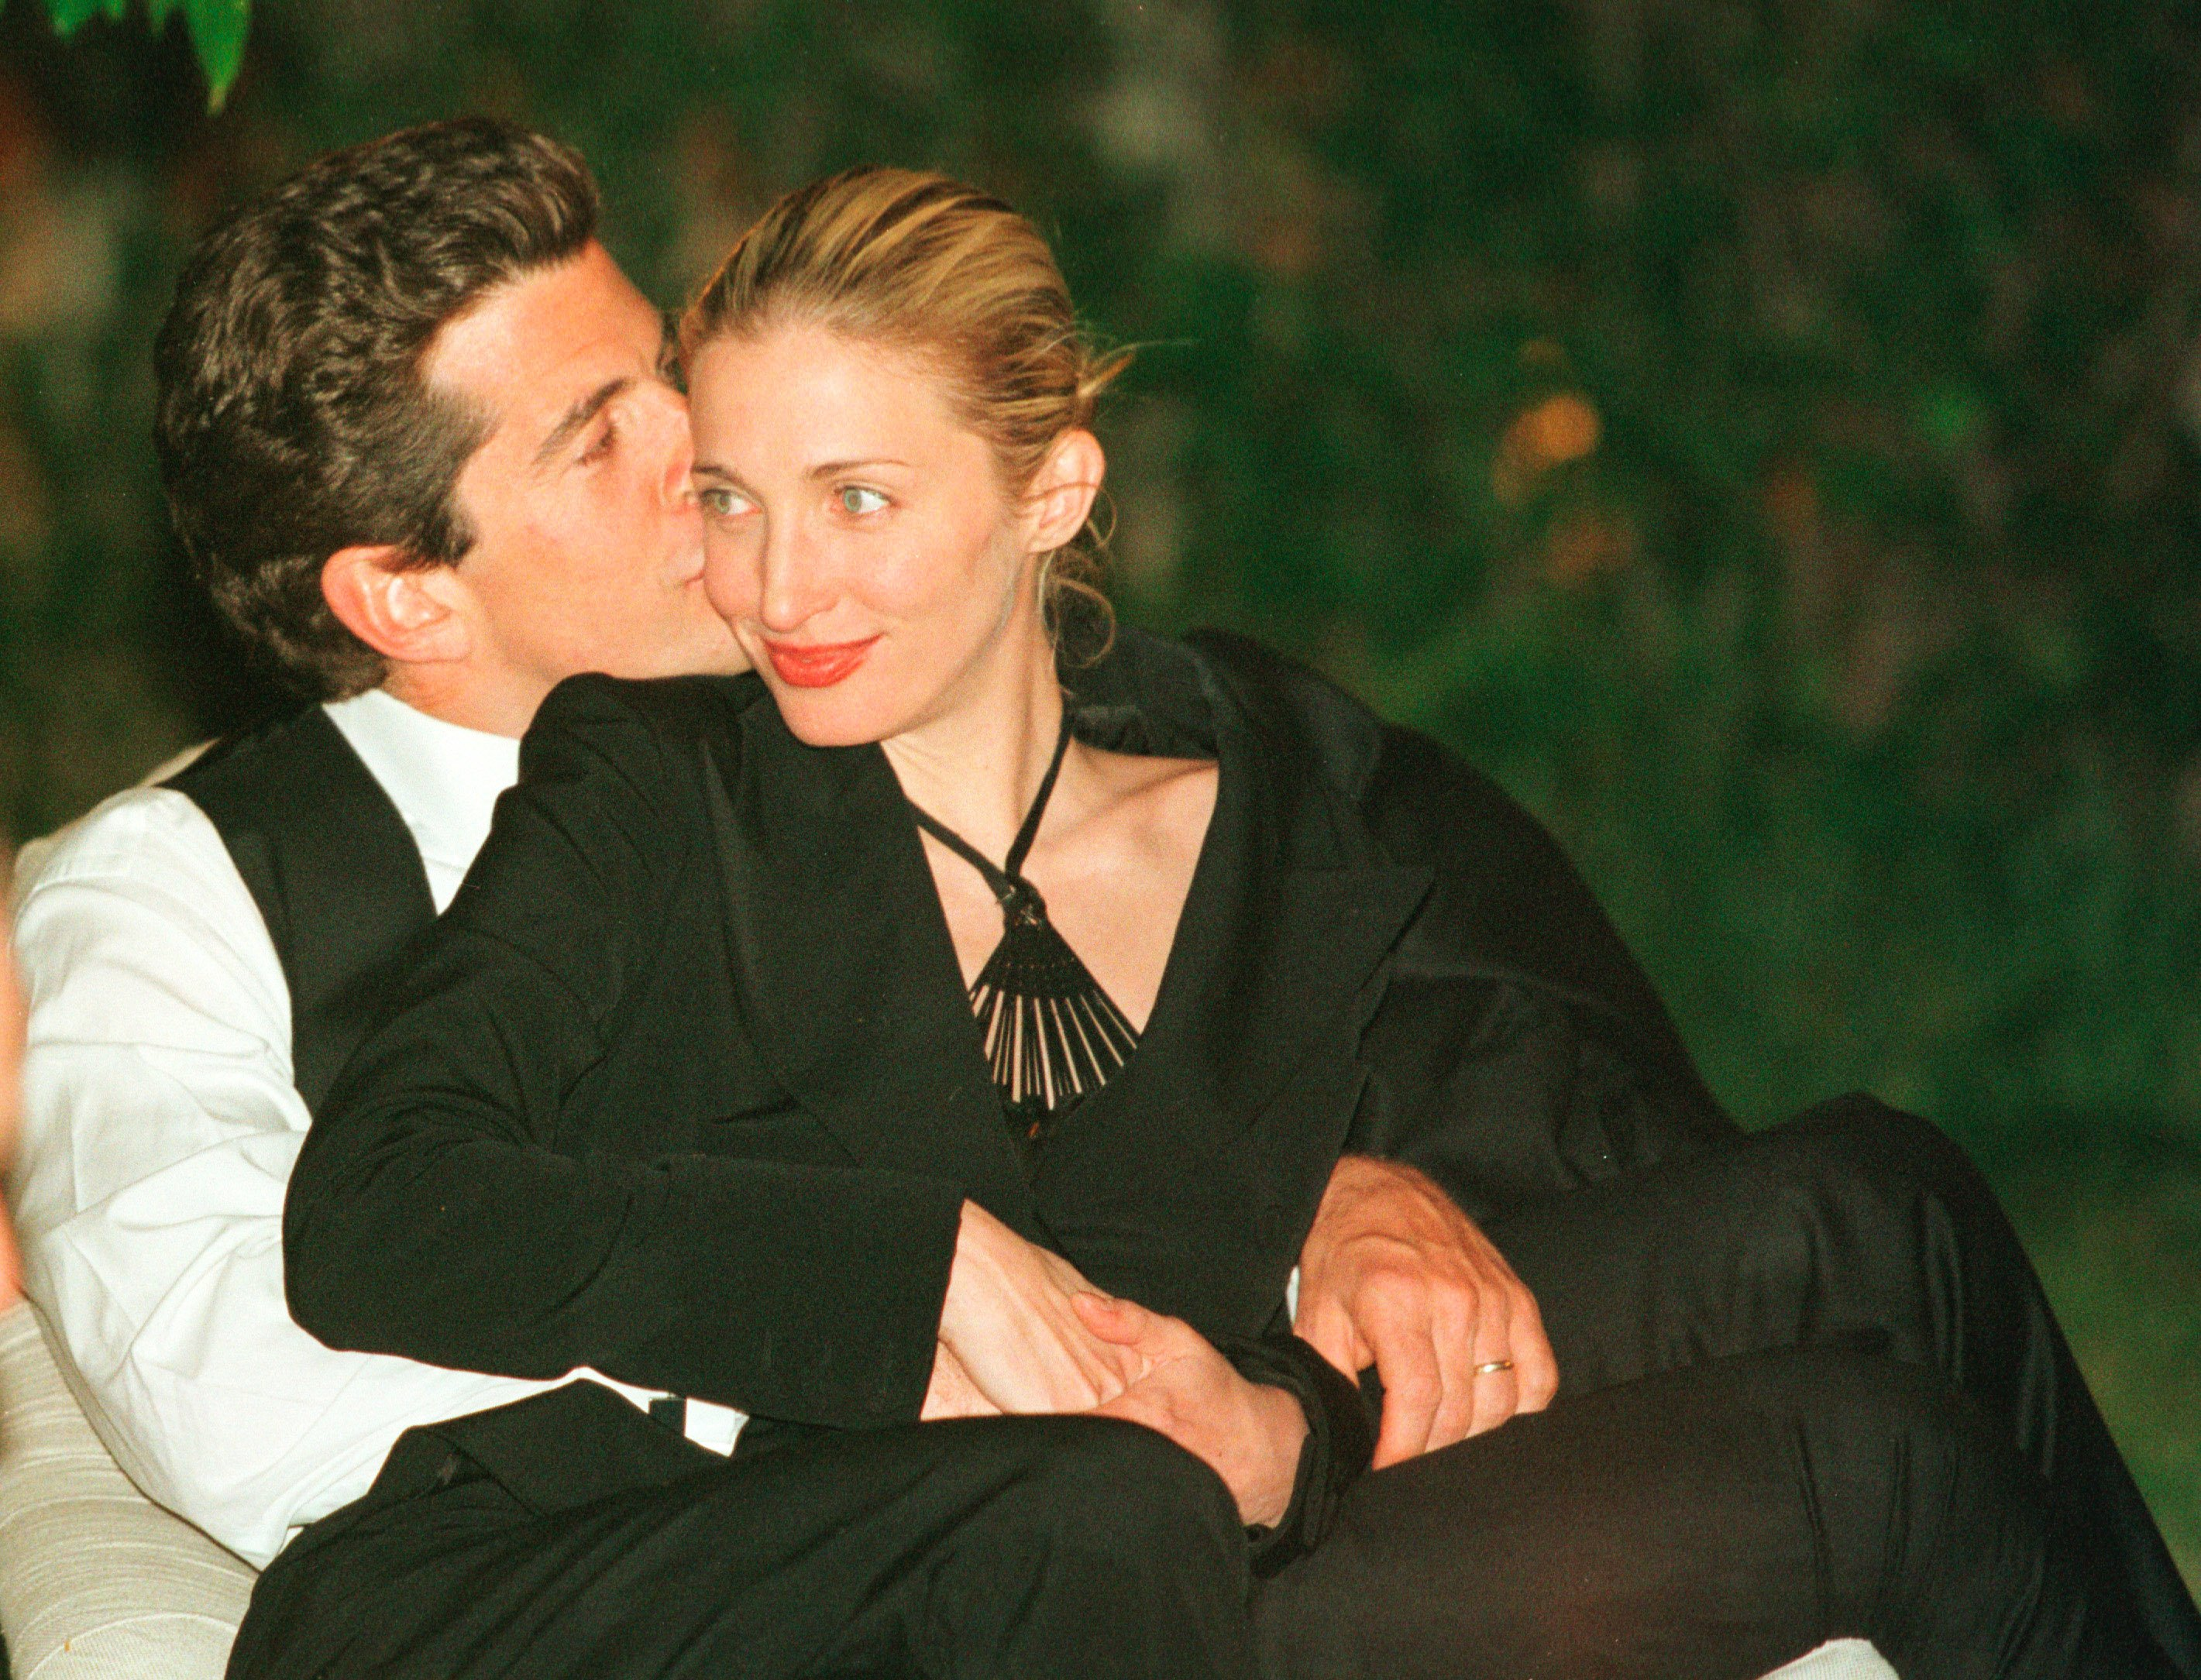 John F. Kennedy, Jr. gives his wife Carolyn a kiss on the cheek during the annual White House Correspondents dinner May 1, 1999 in Washington, D.C. | Photo: Getty Images